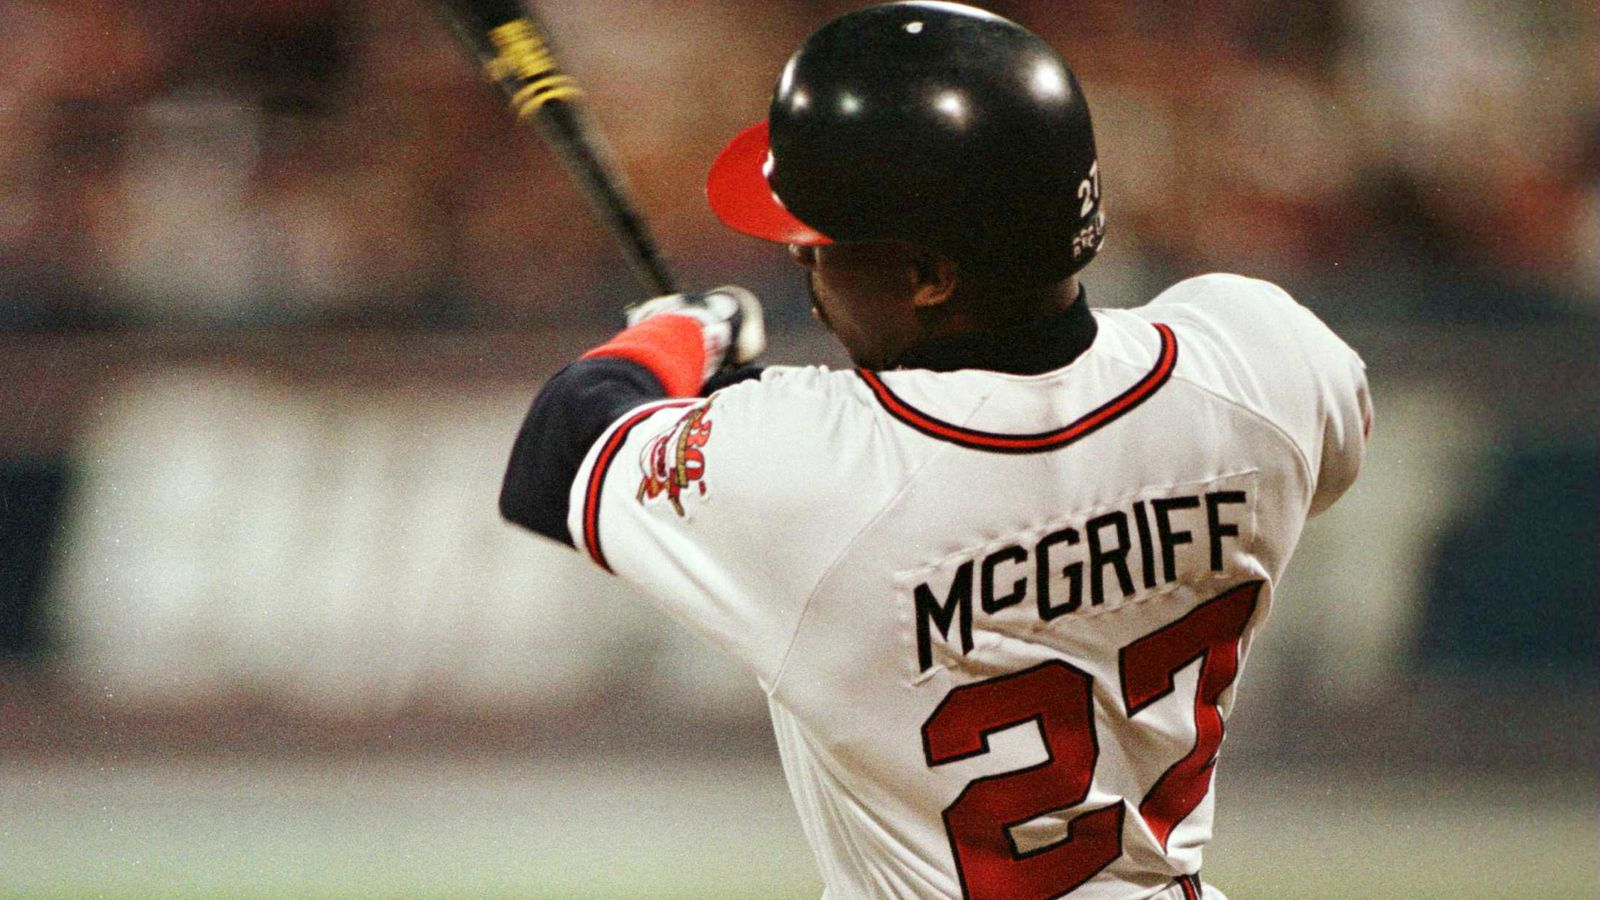 Fred McGriff should be a Hall of Famer